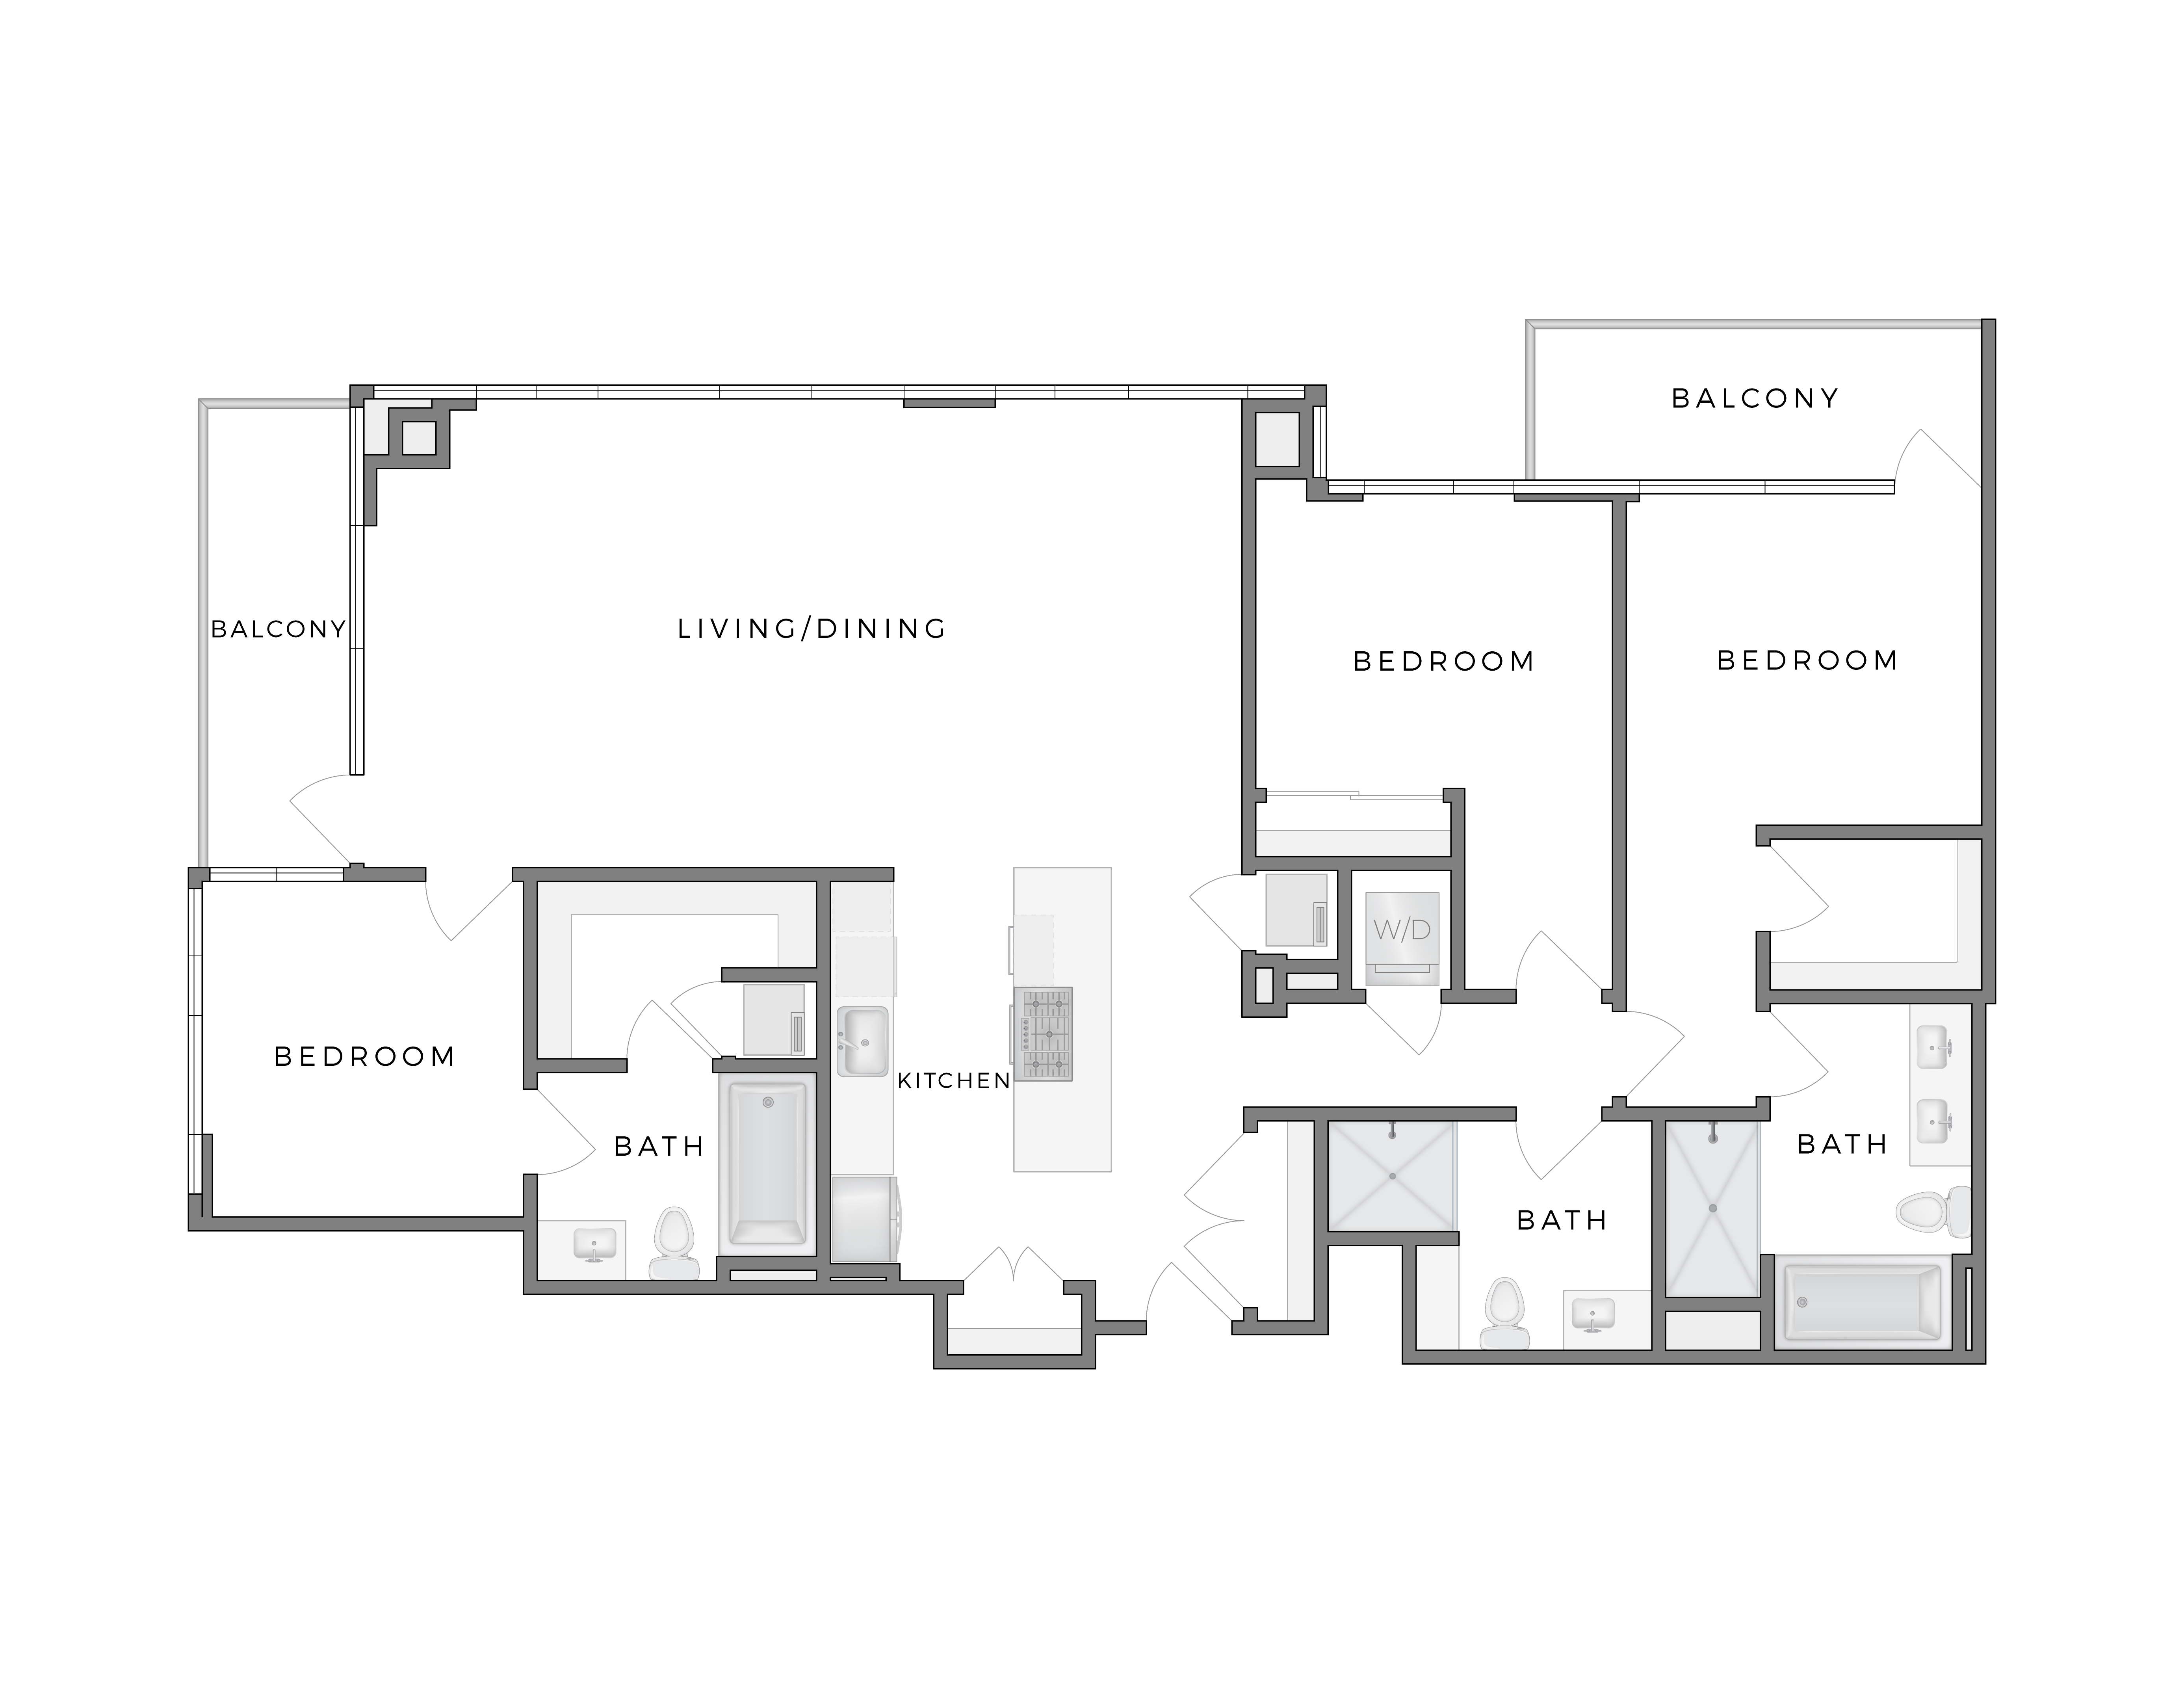 Atelier Warhol 7 apartment floorplan diagram with three bedrooms, three bathrooms, kitchen, living dining area and two patios